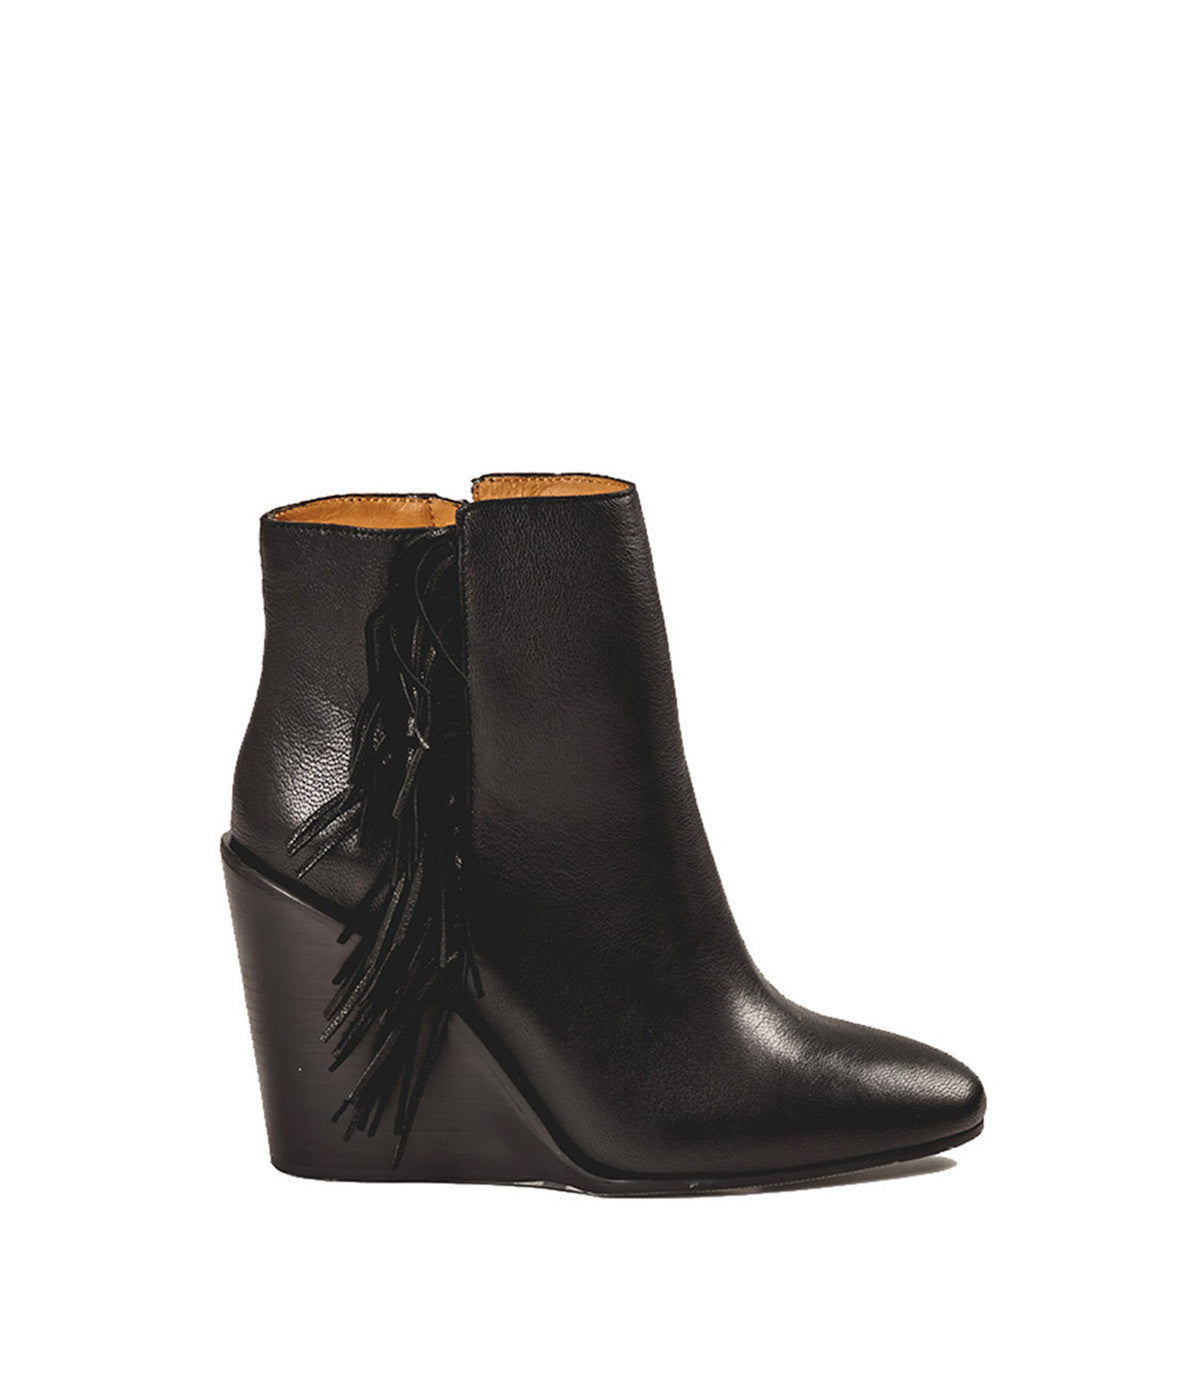 Fringe Wedge Ankle Boots